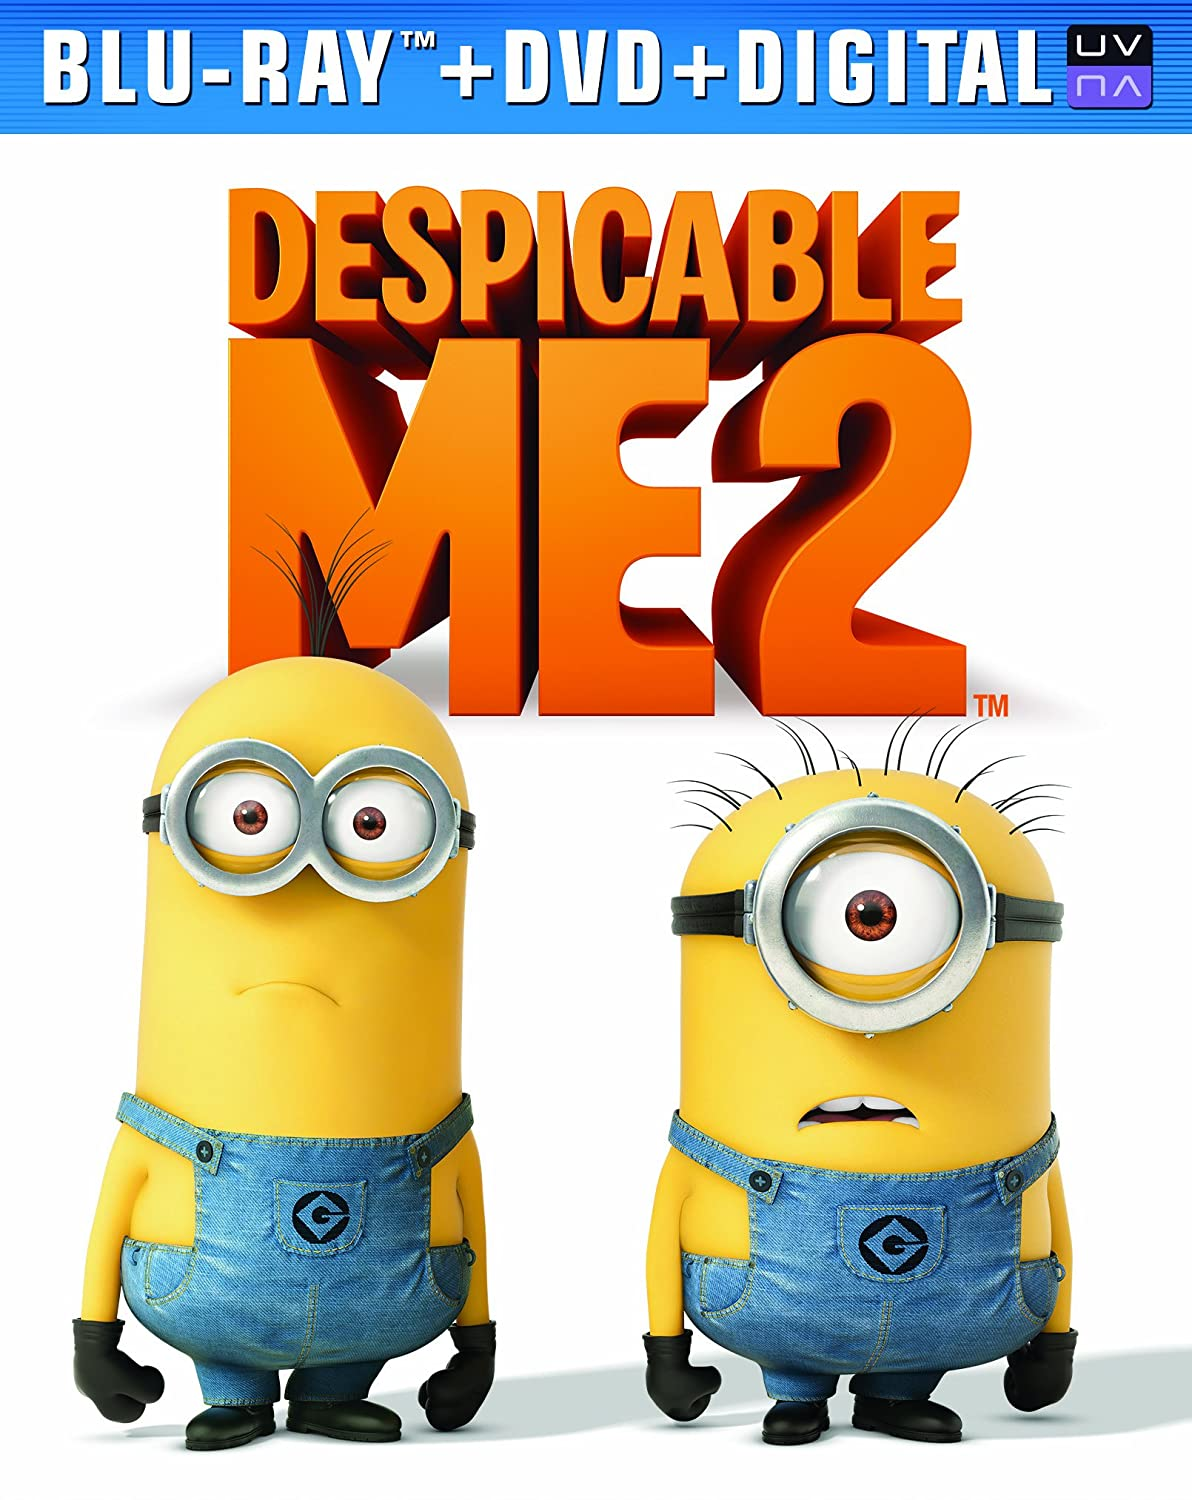 Despicable Me 2 Blu-ray DVD